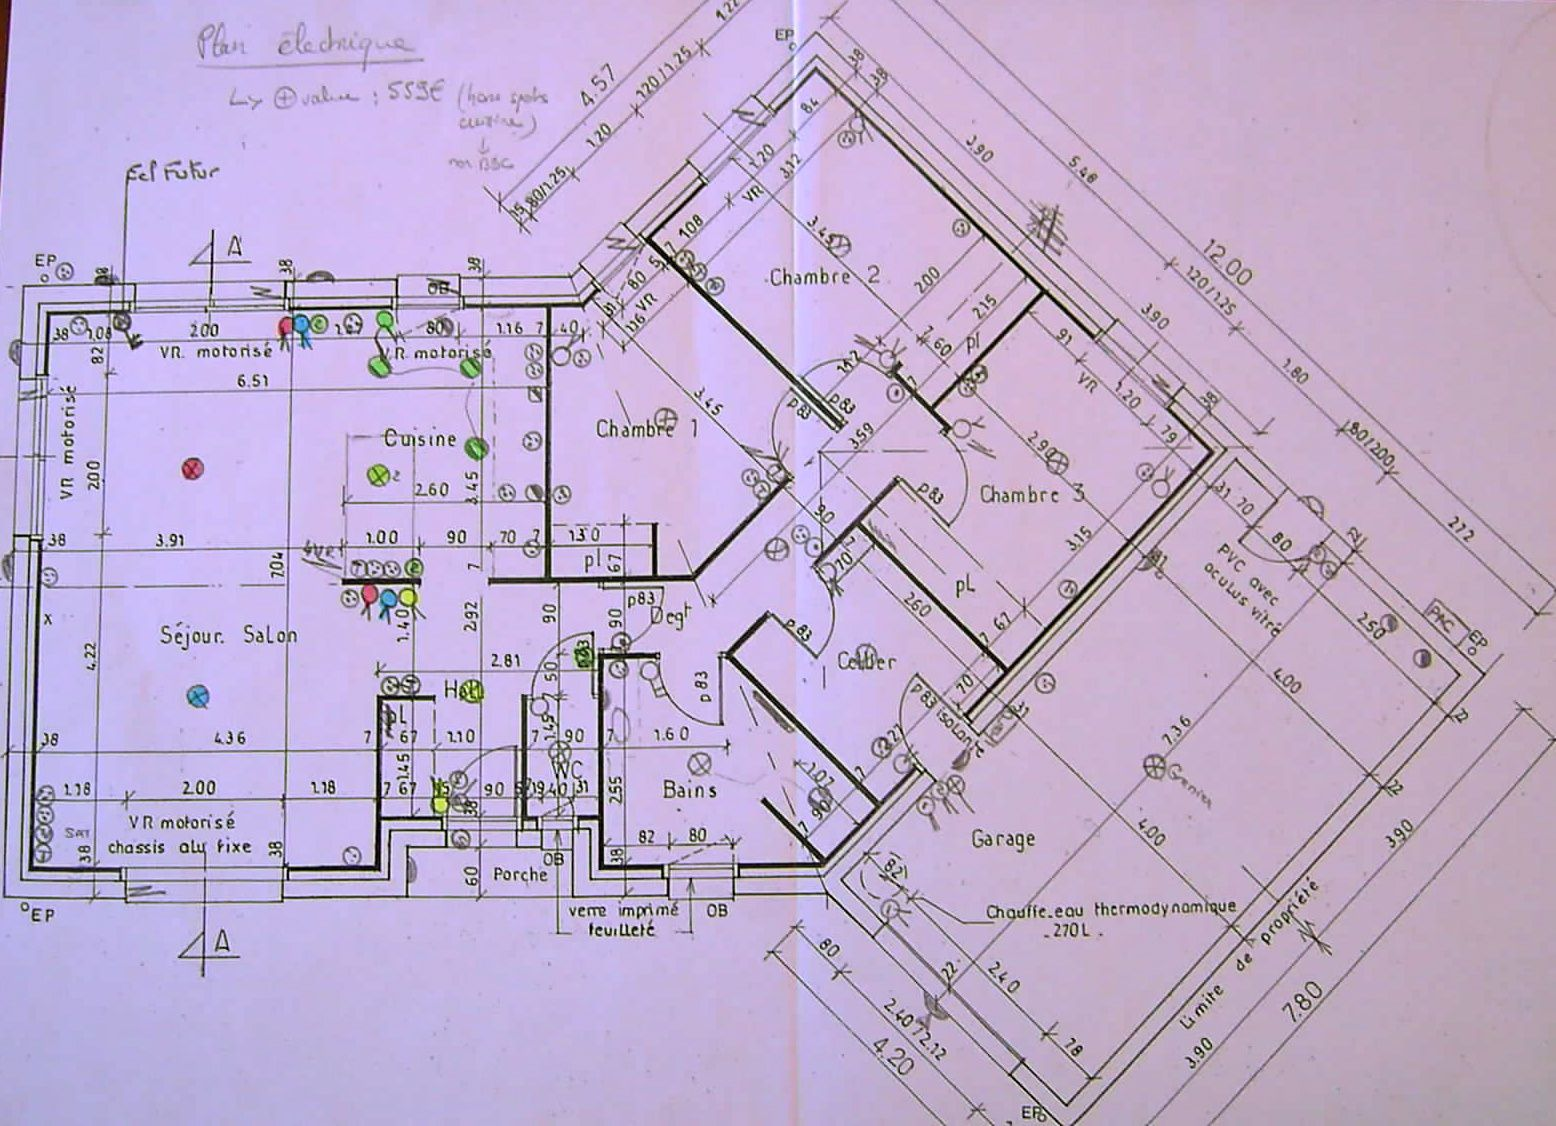 Plan lectrique de la maison les tapes de construction for Etape de construction d une maison